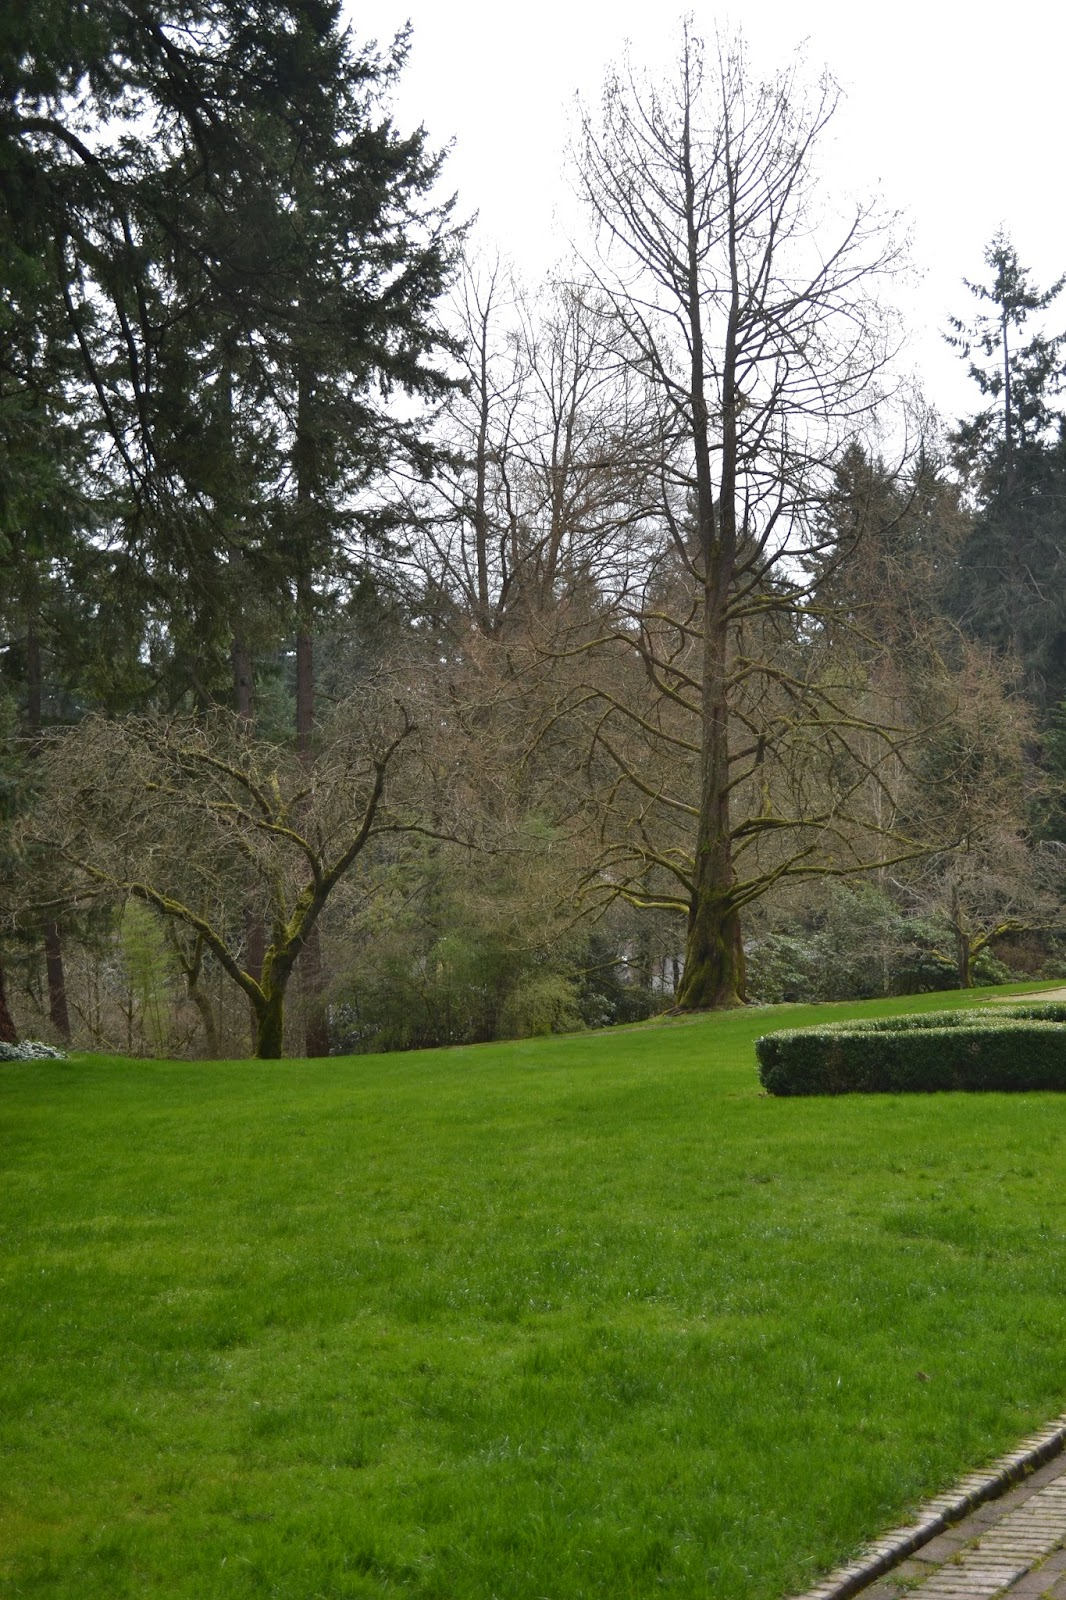 The Outlaw Gardener: Visiting Lakewold Gardens in Late Winter